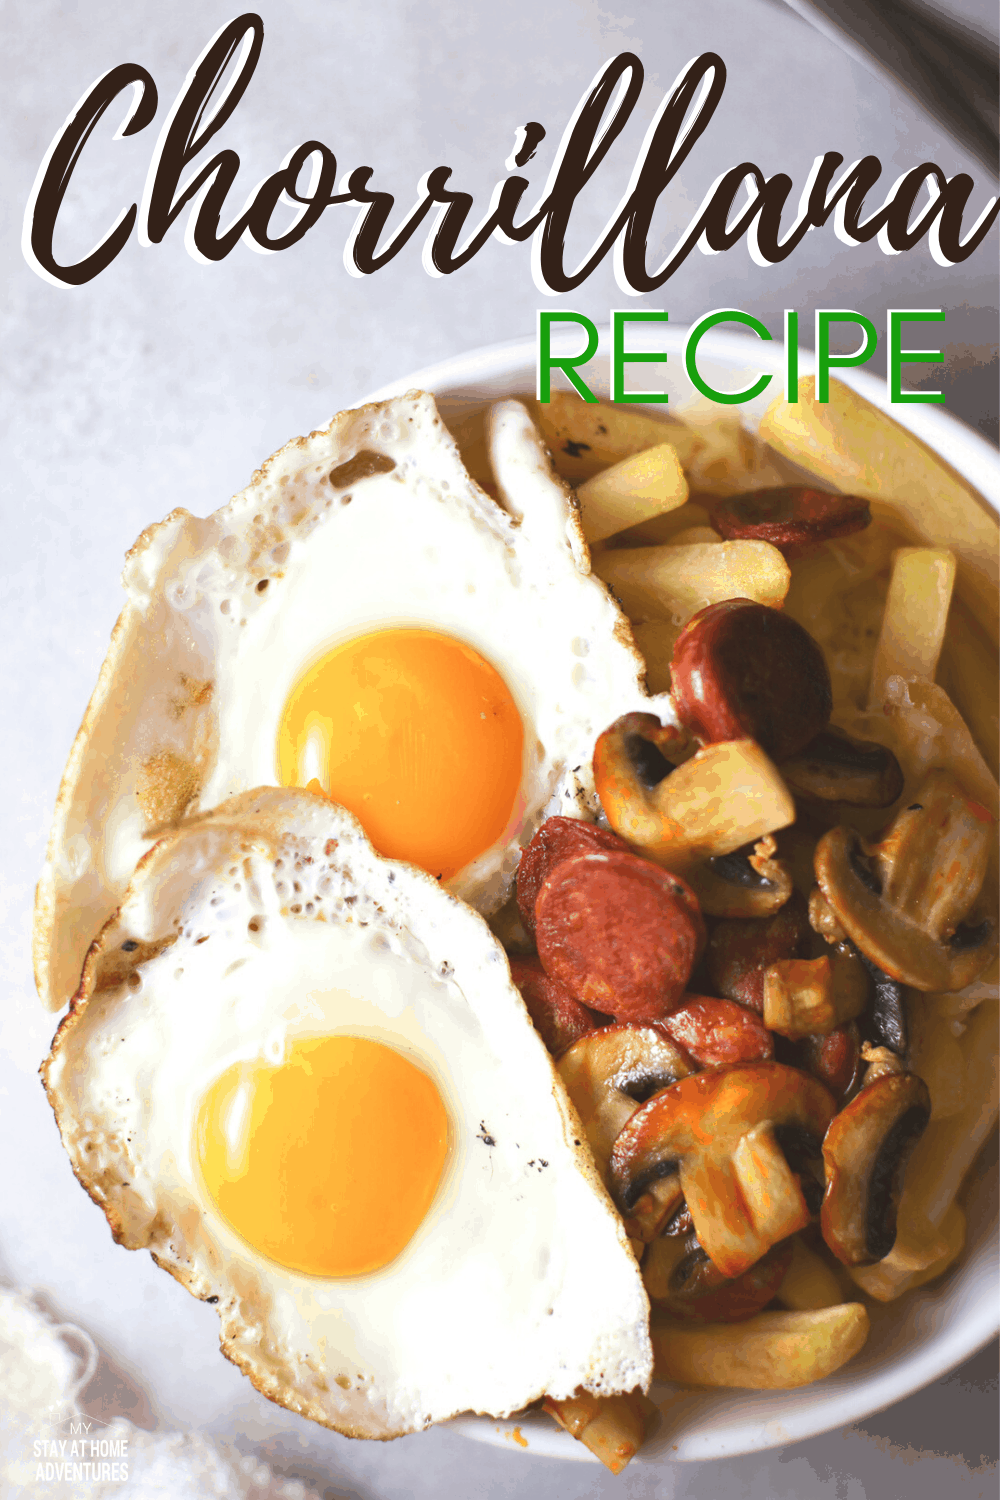 Learn how to create this delicious easy Chorrillana, a famous Chilean dish. Made with fries and topped with mushrooms and chorizo and eggs. #Chileanrecipe #frenchfryrecipe #Chorrillana via @mystayathome